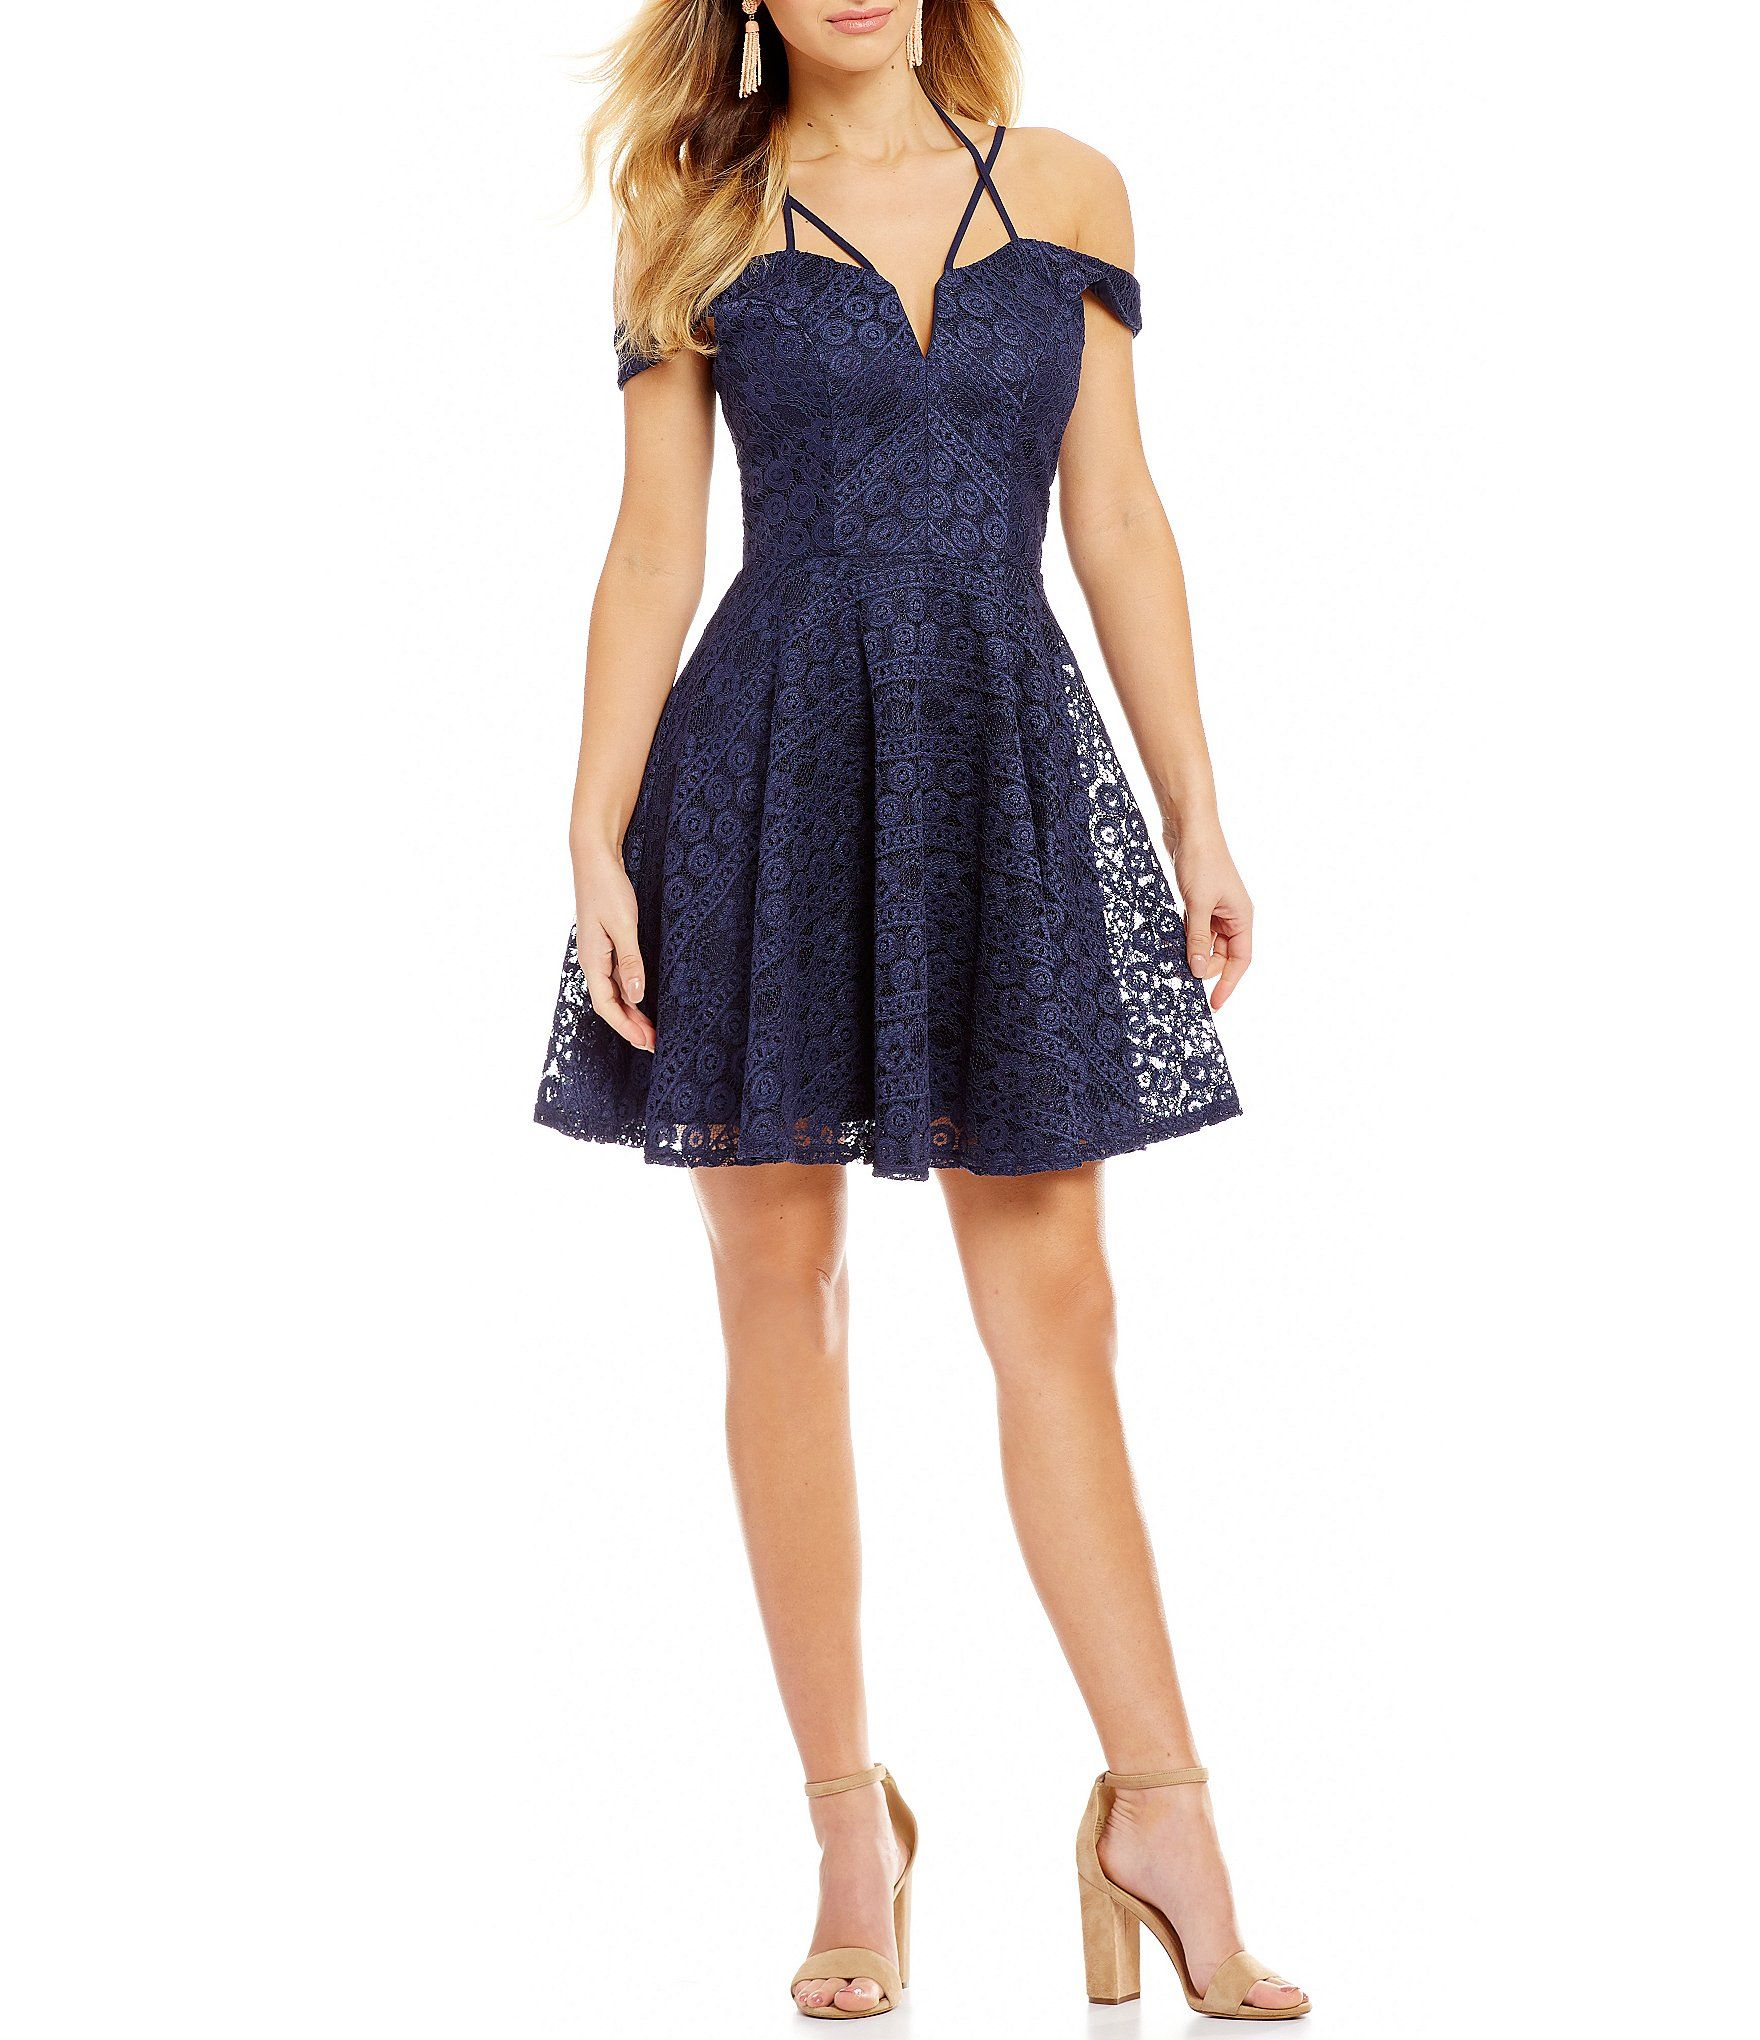 e7fc89cba4 Shop for Jodi Kristopher Off-The-Shoulder Lace Fit-And-Flare Dress at  Dillards.com. Visit Dillards.com to find clothing